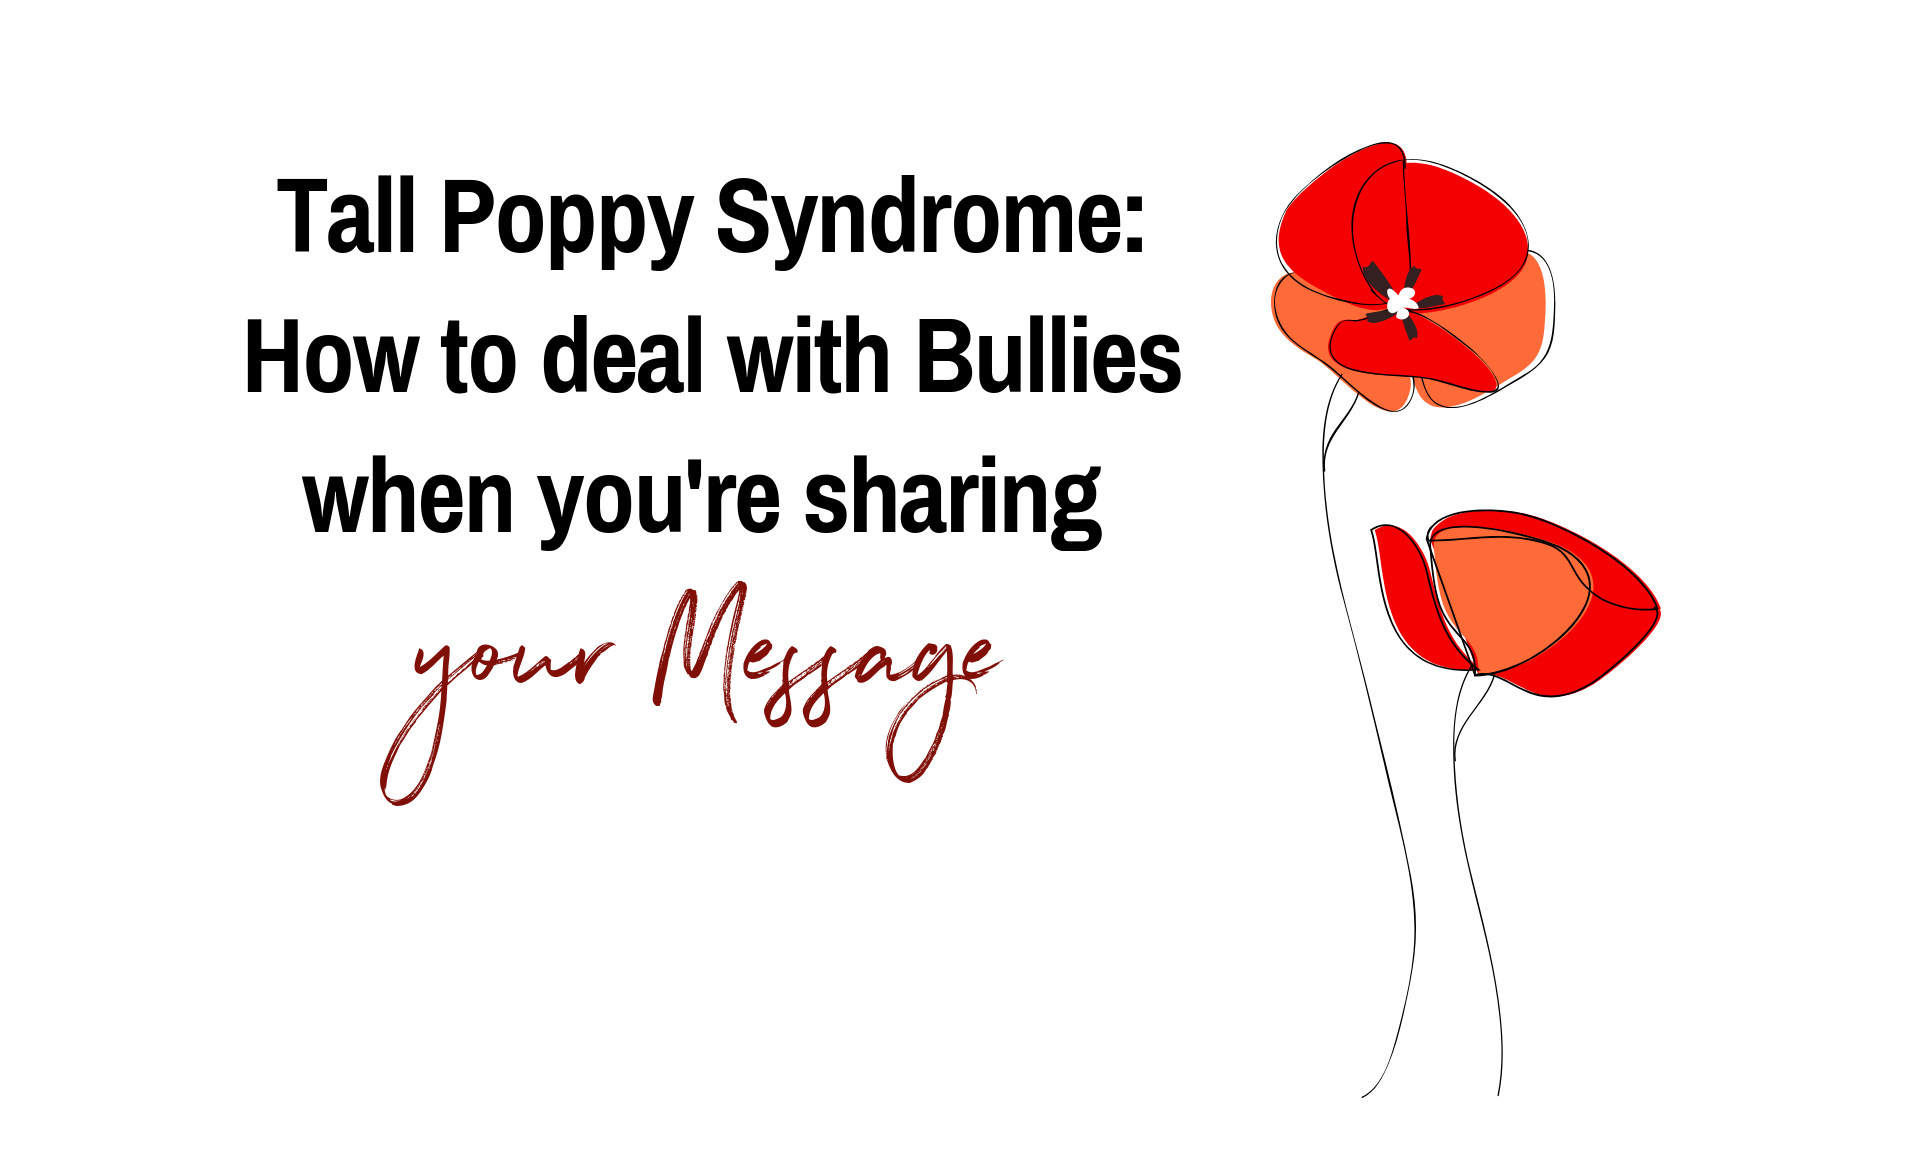 Tall Poppy Syndrome: How to Deal with Bullies When You're Sharing Your Message